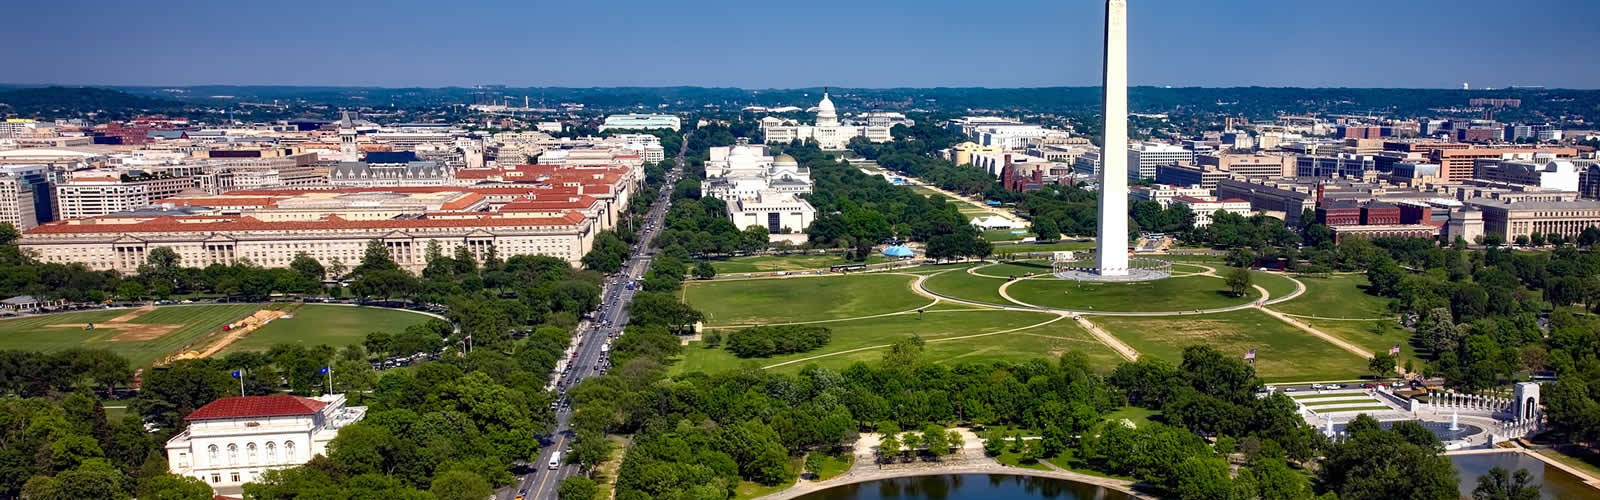 decouvrir-visiter-national-mall-culture-dc-une